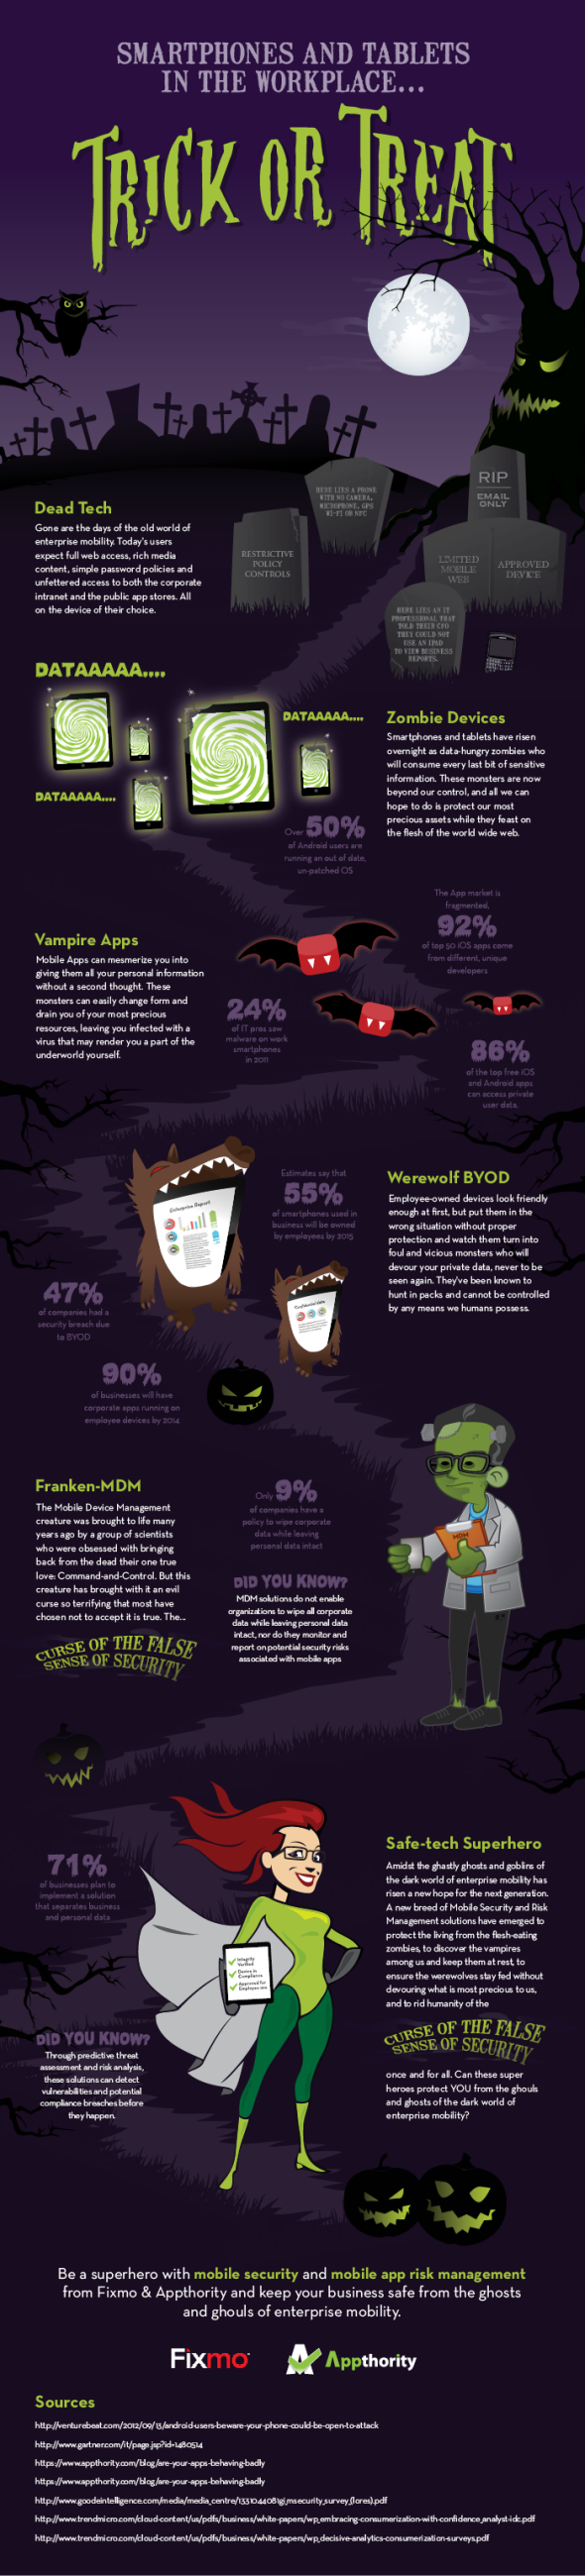 Halloween Trick or Treat [INFOGRAPHIC] halloween small